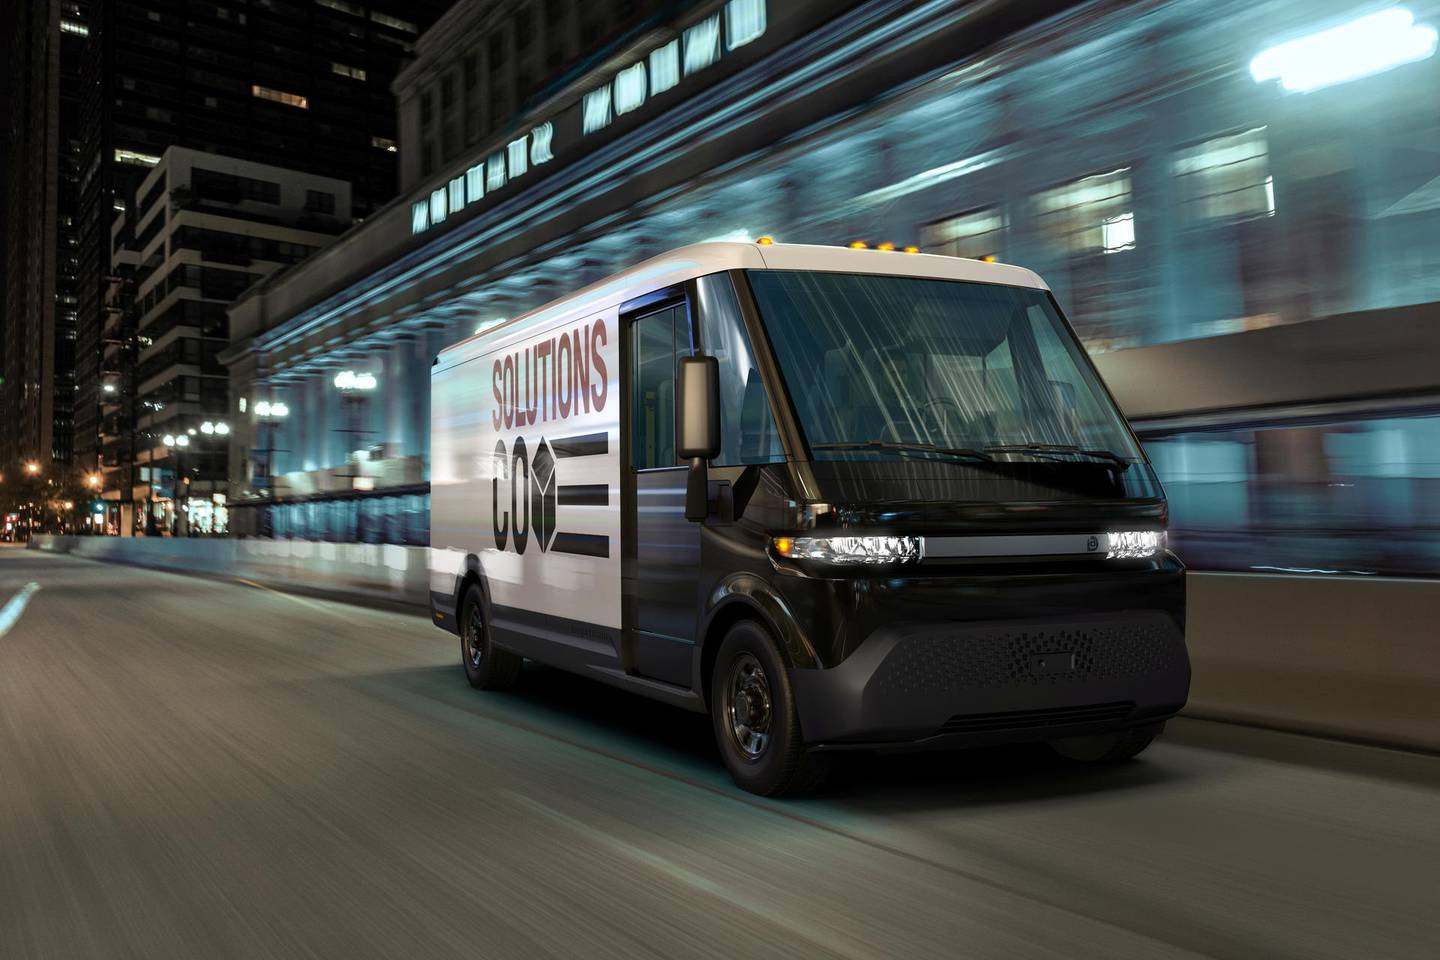 FILE PHOTO: GM's new EV600 electric van is seen in an undated photograph released in Detroit, Michigan, U.S, January 12, 2021.  GM/Handout via REUTERS NO RESALES. NO ARCHIVES. THIS IMAGE HAS BEEN SUPPLIED BY A THIRD PARTY./File Photo